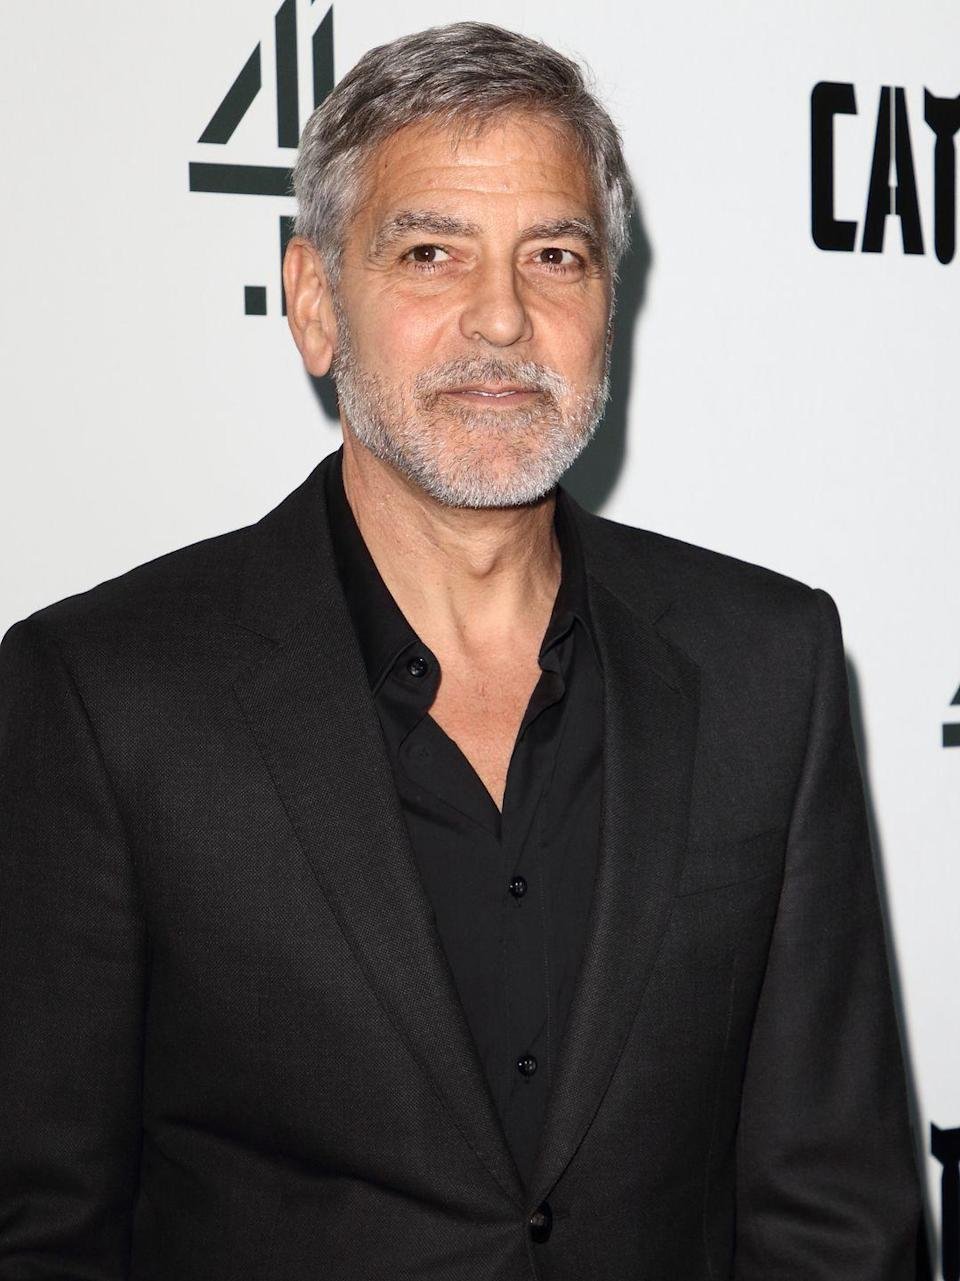 <p>The term silver fox was practically coined for Clooney. The actor embraced his graying hair when he was just at the start of his movie career and it has since become his signature style. </p>